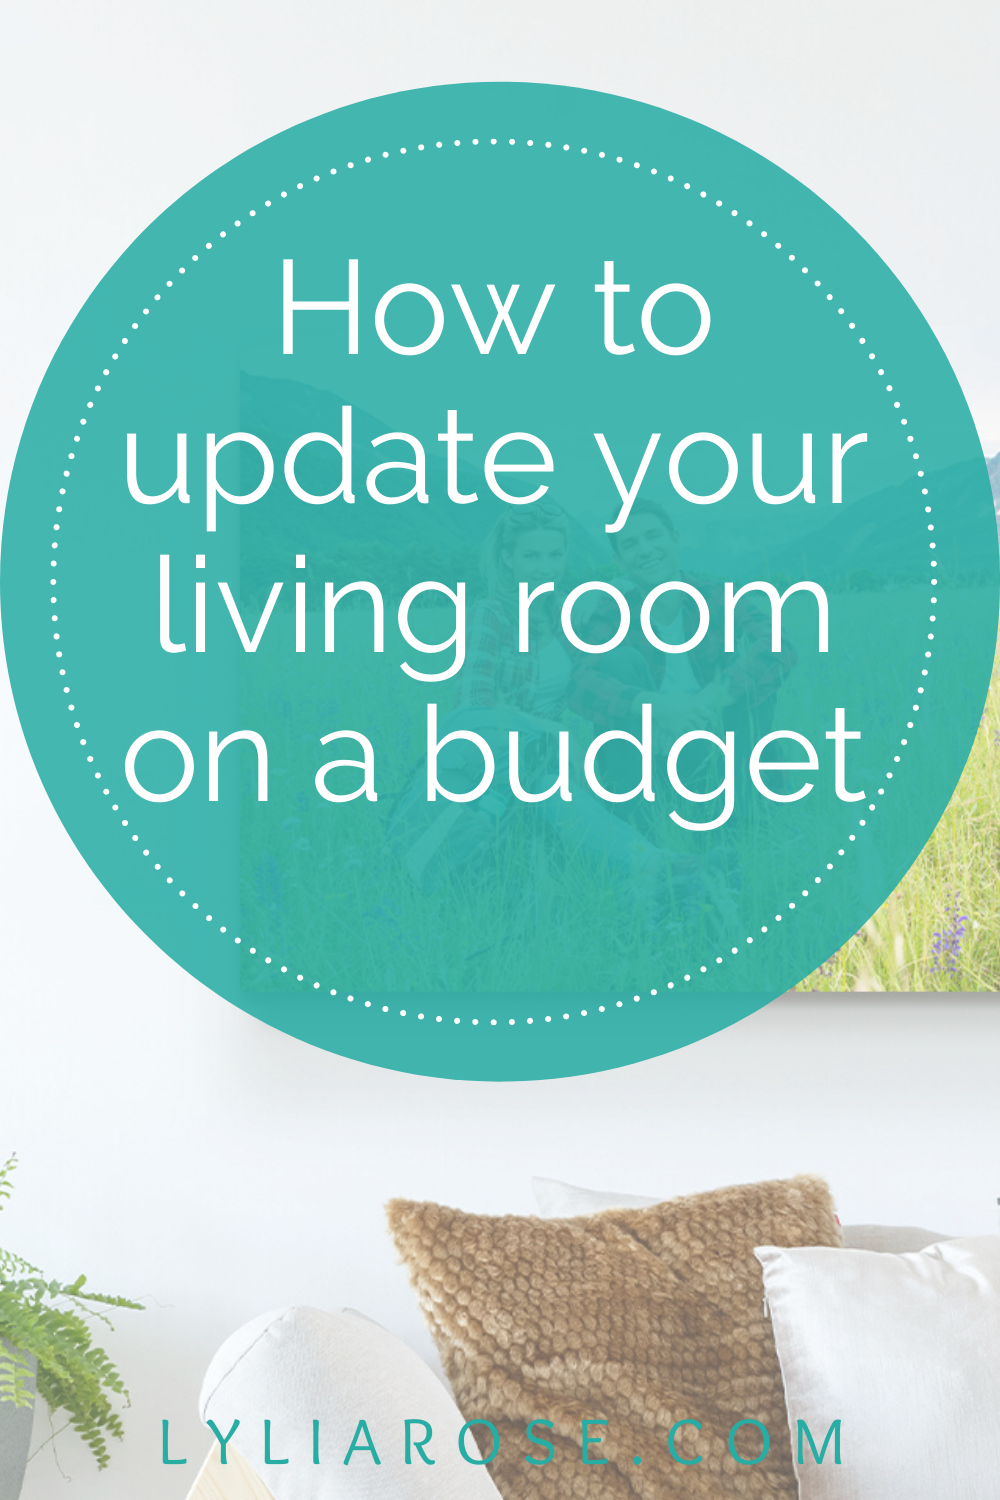 How to update your living room on a budget